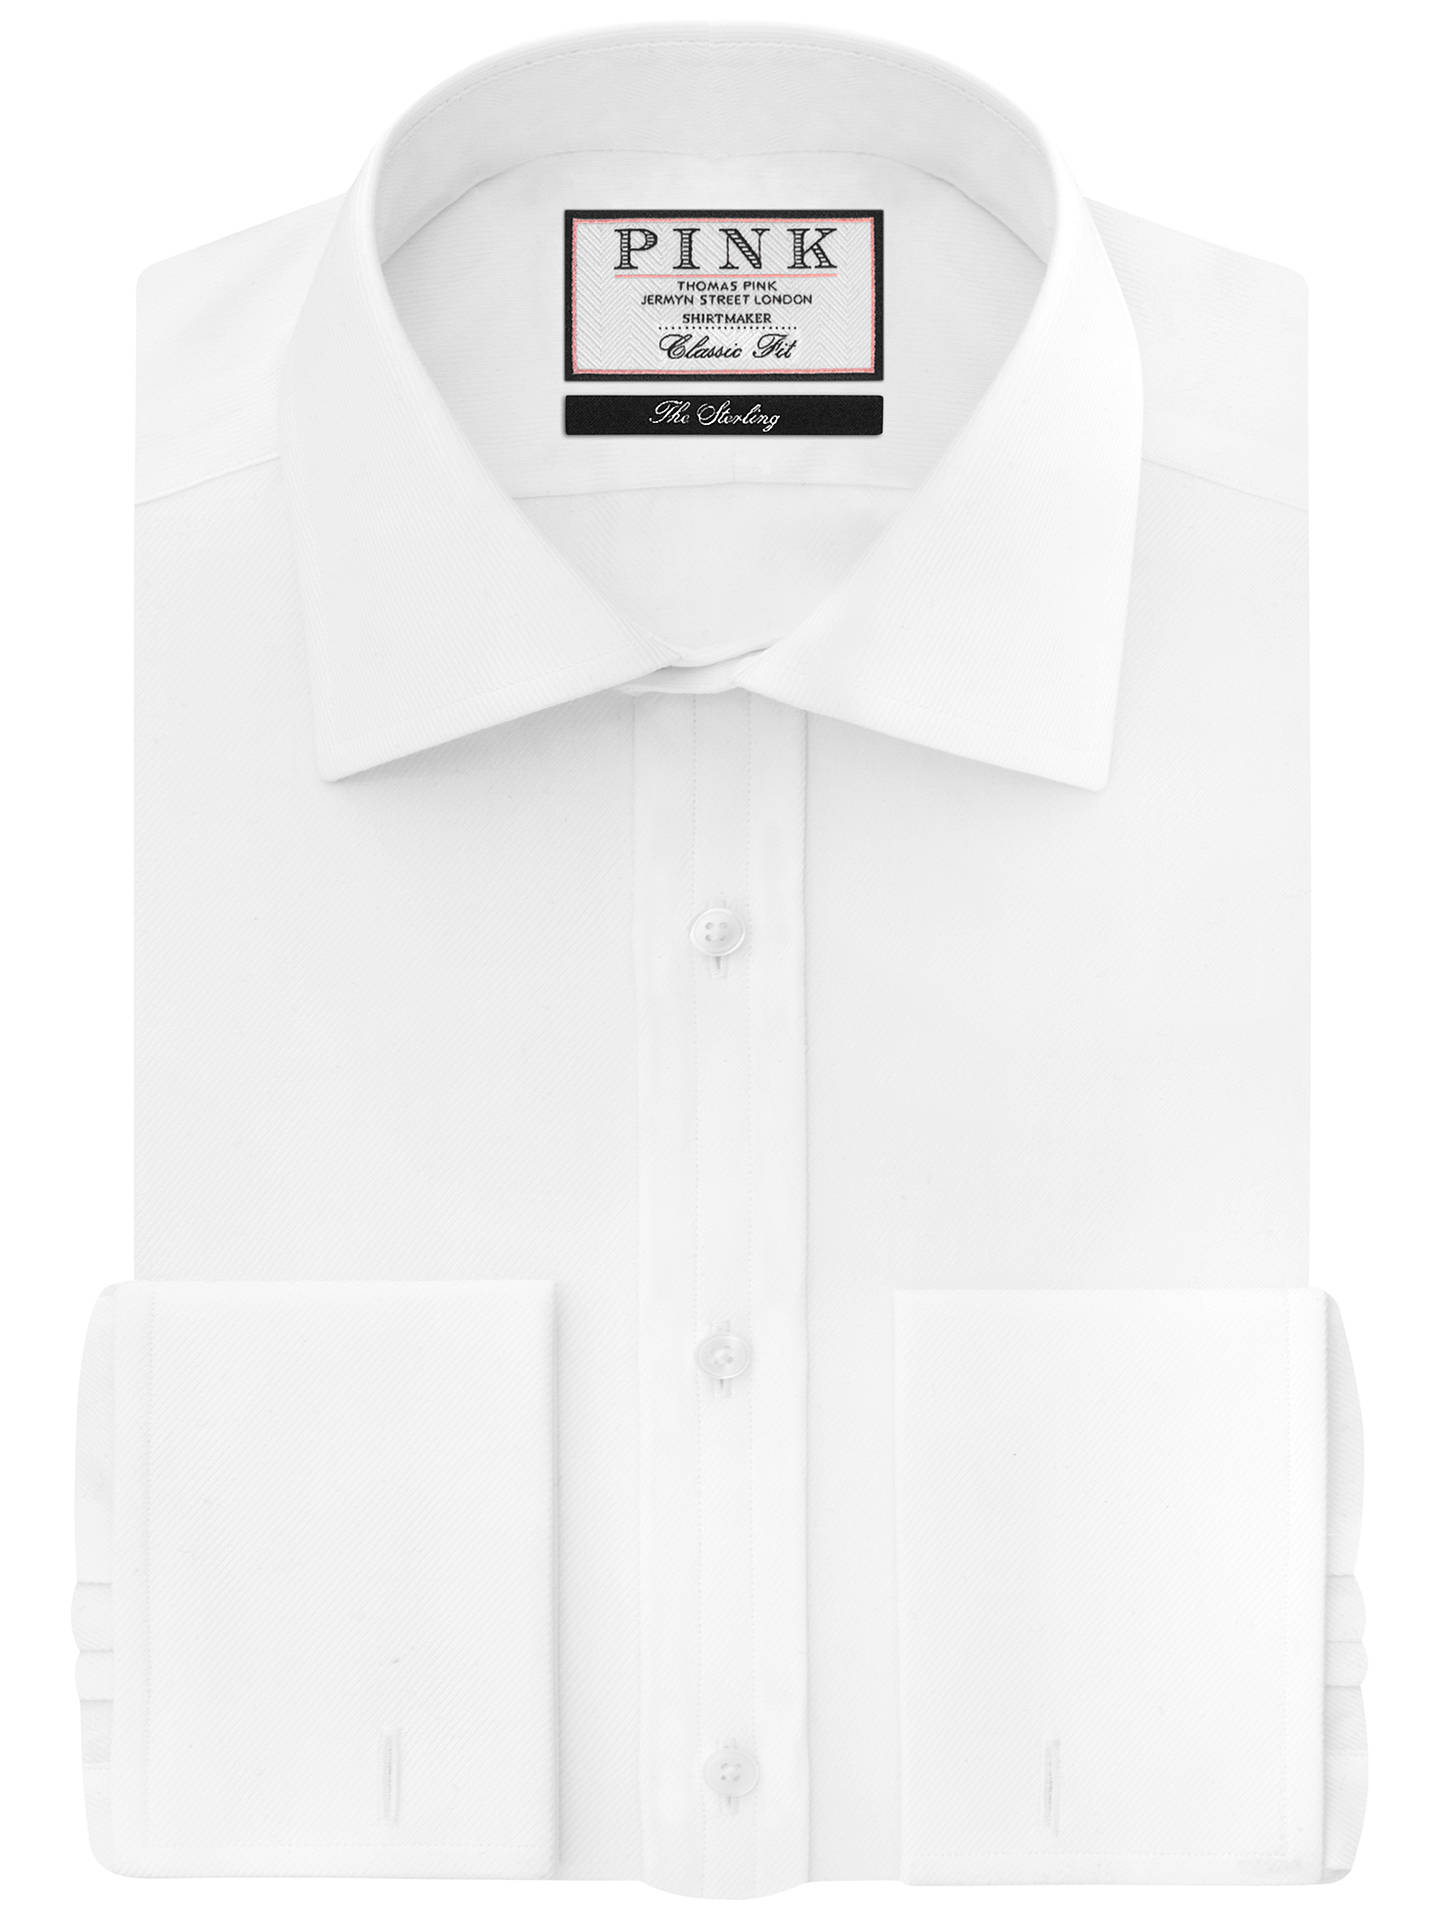 BuyThomas Pink Arthur Plain Classic Fit Double Cuff Shirt, White, 14.5 Online at johnlewis.com